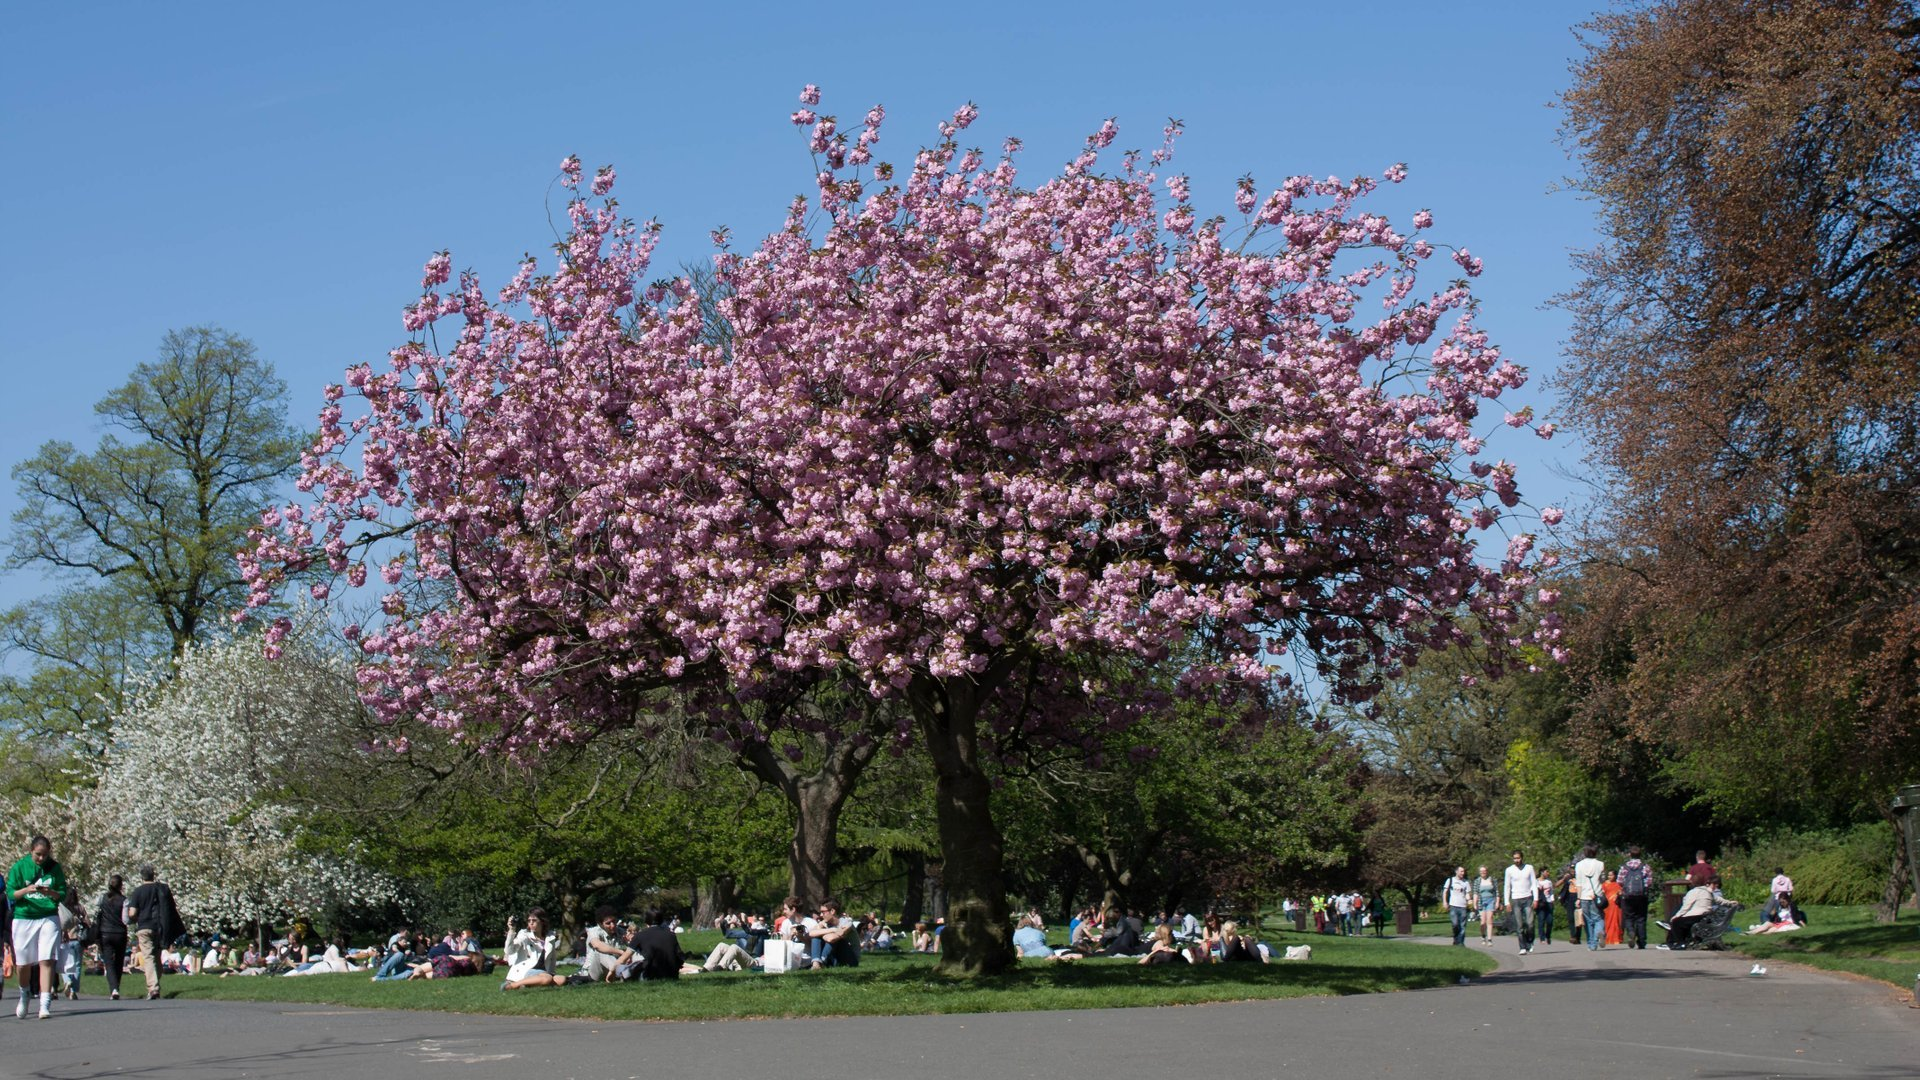 Pink blossom in Regent's Park 2020